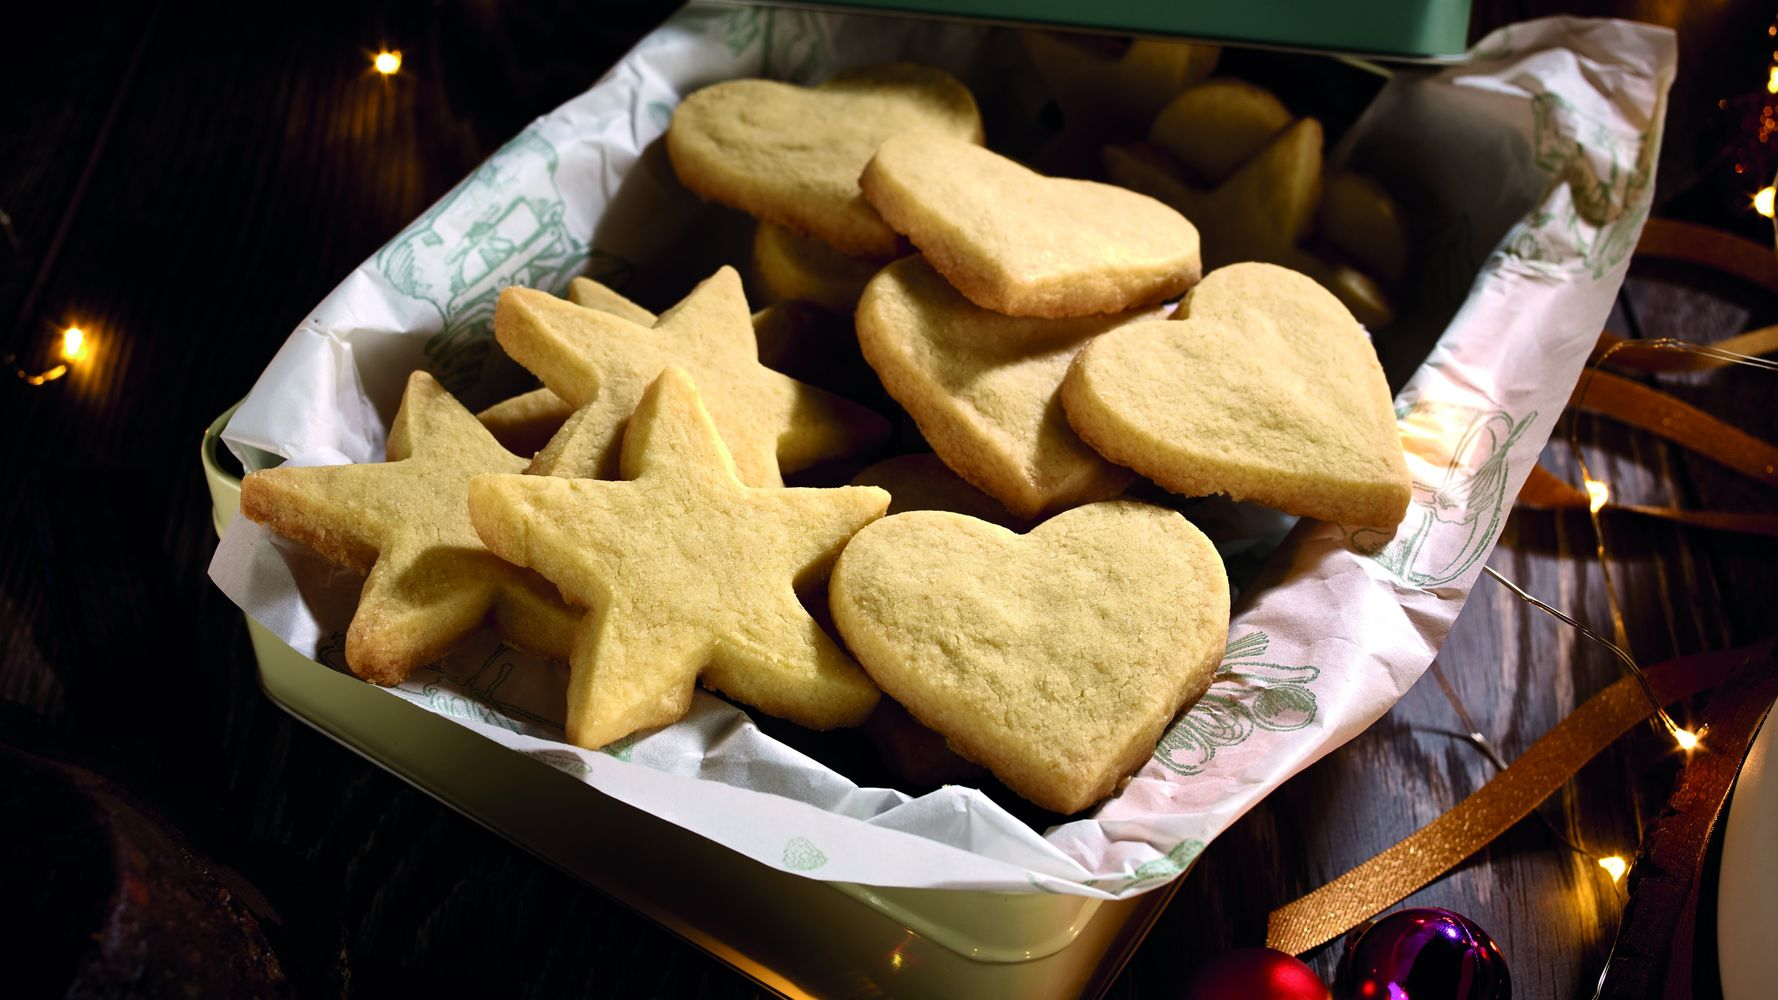 This Simple 5-Step Shortbread Recipe Will Instantly Improve Your Day